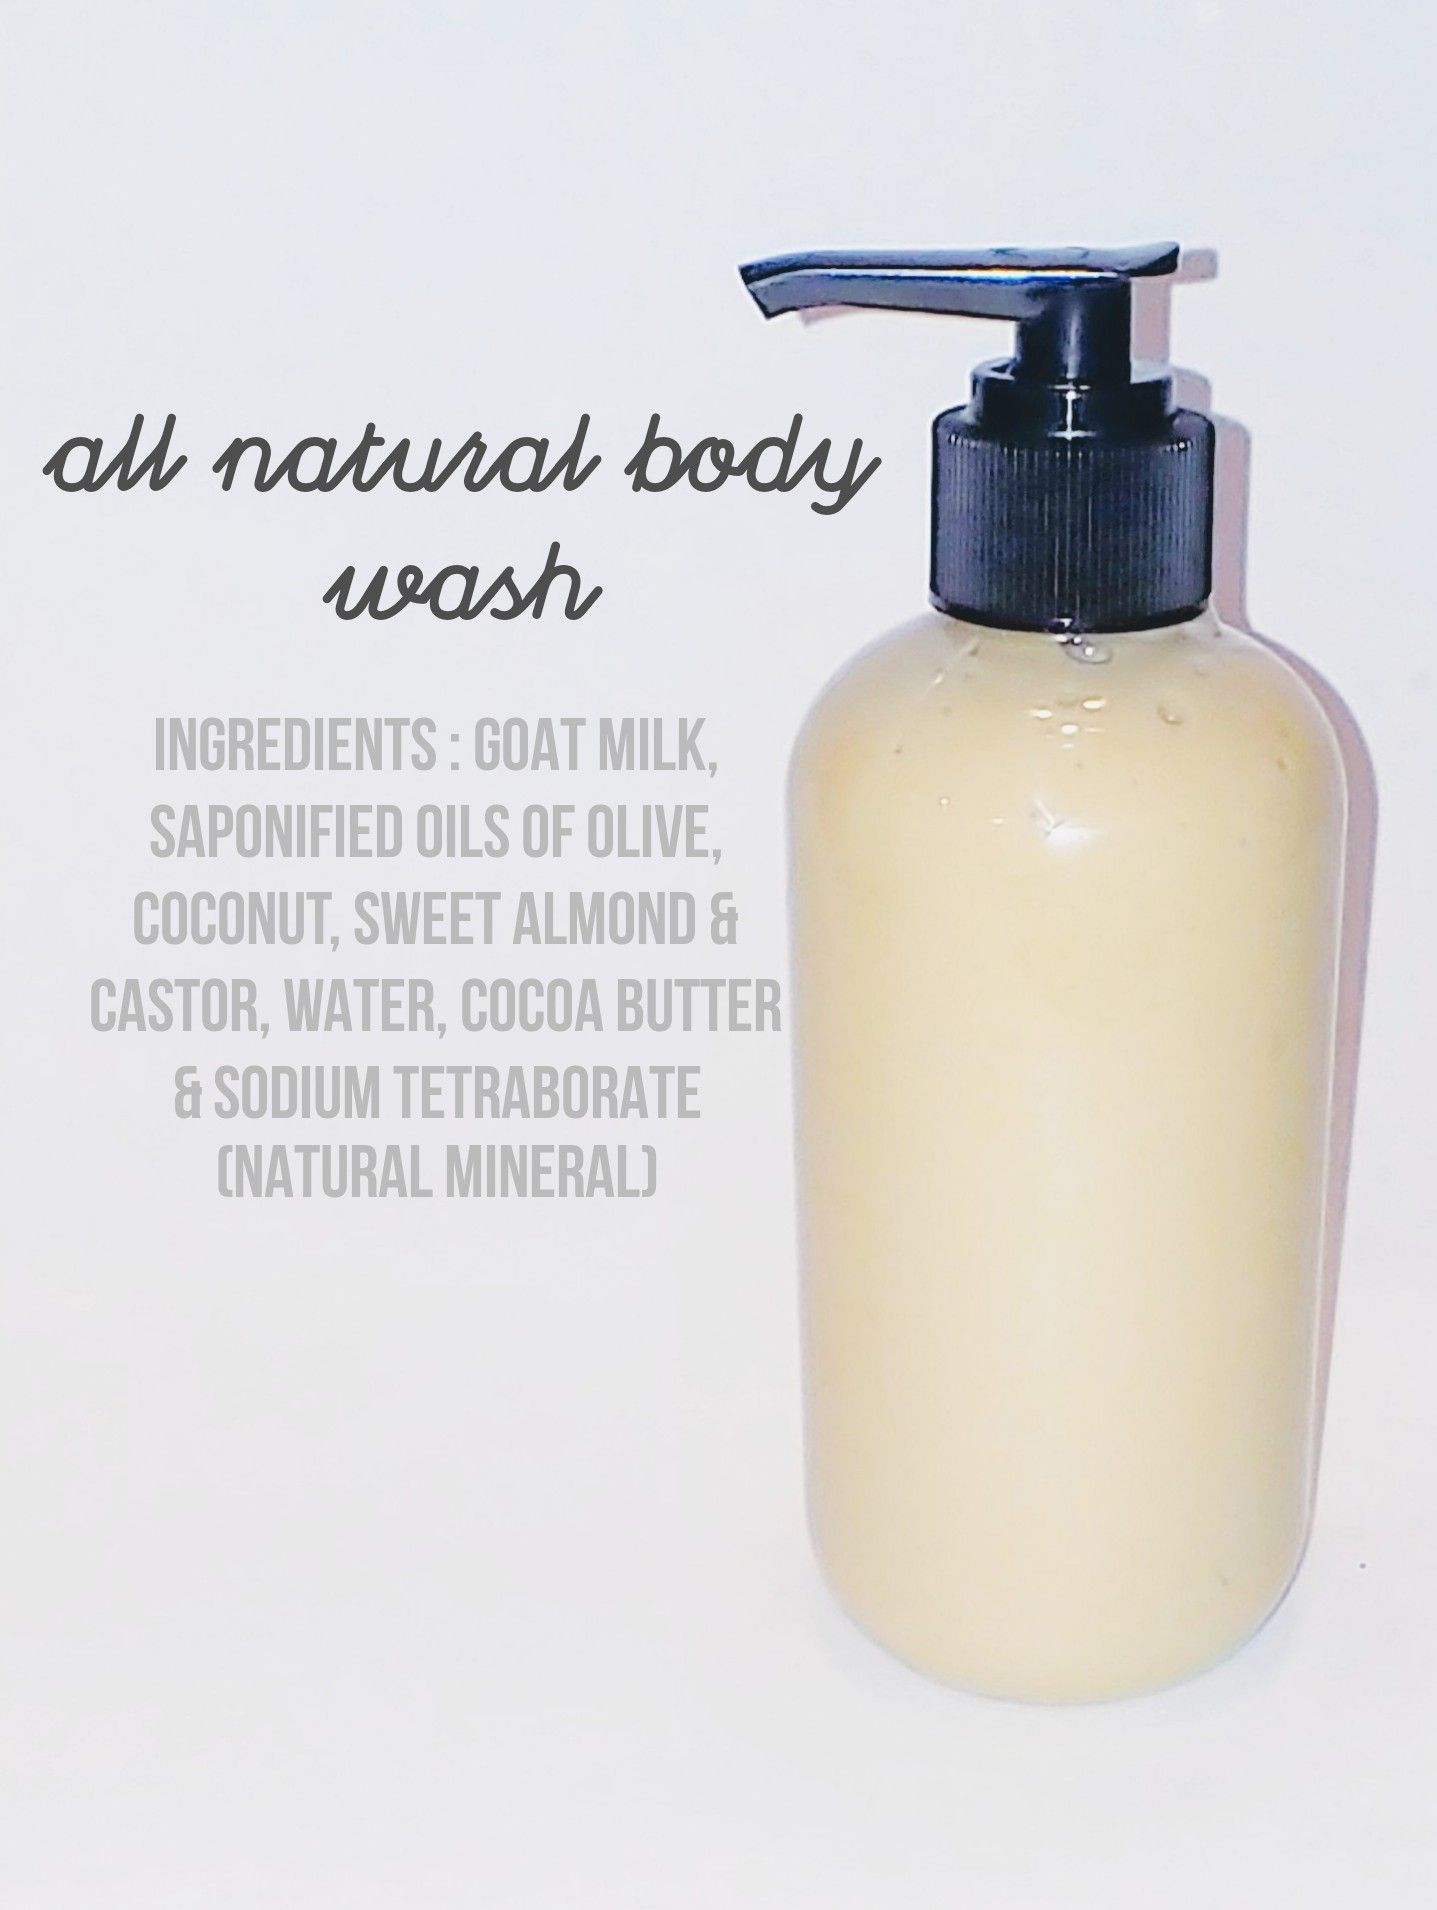 homemade dishwashing liquid can also be used as body